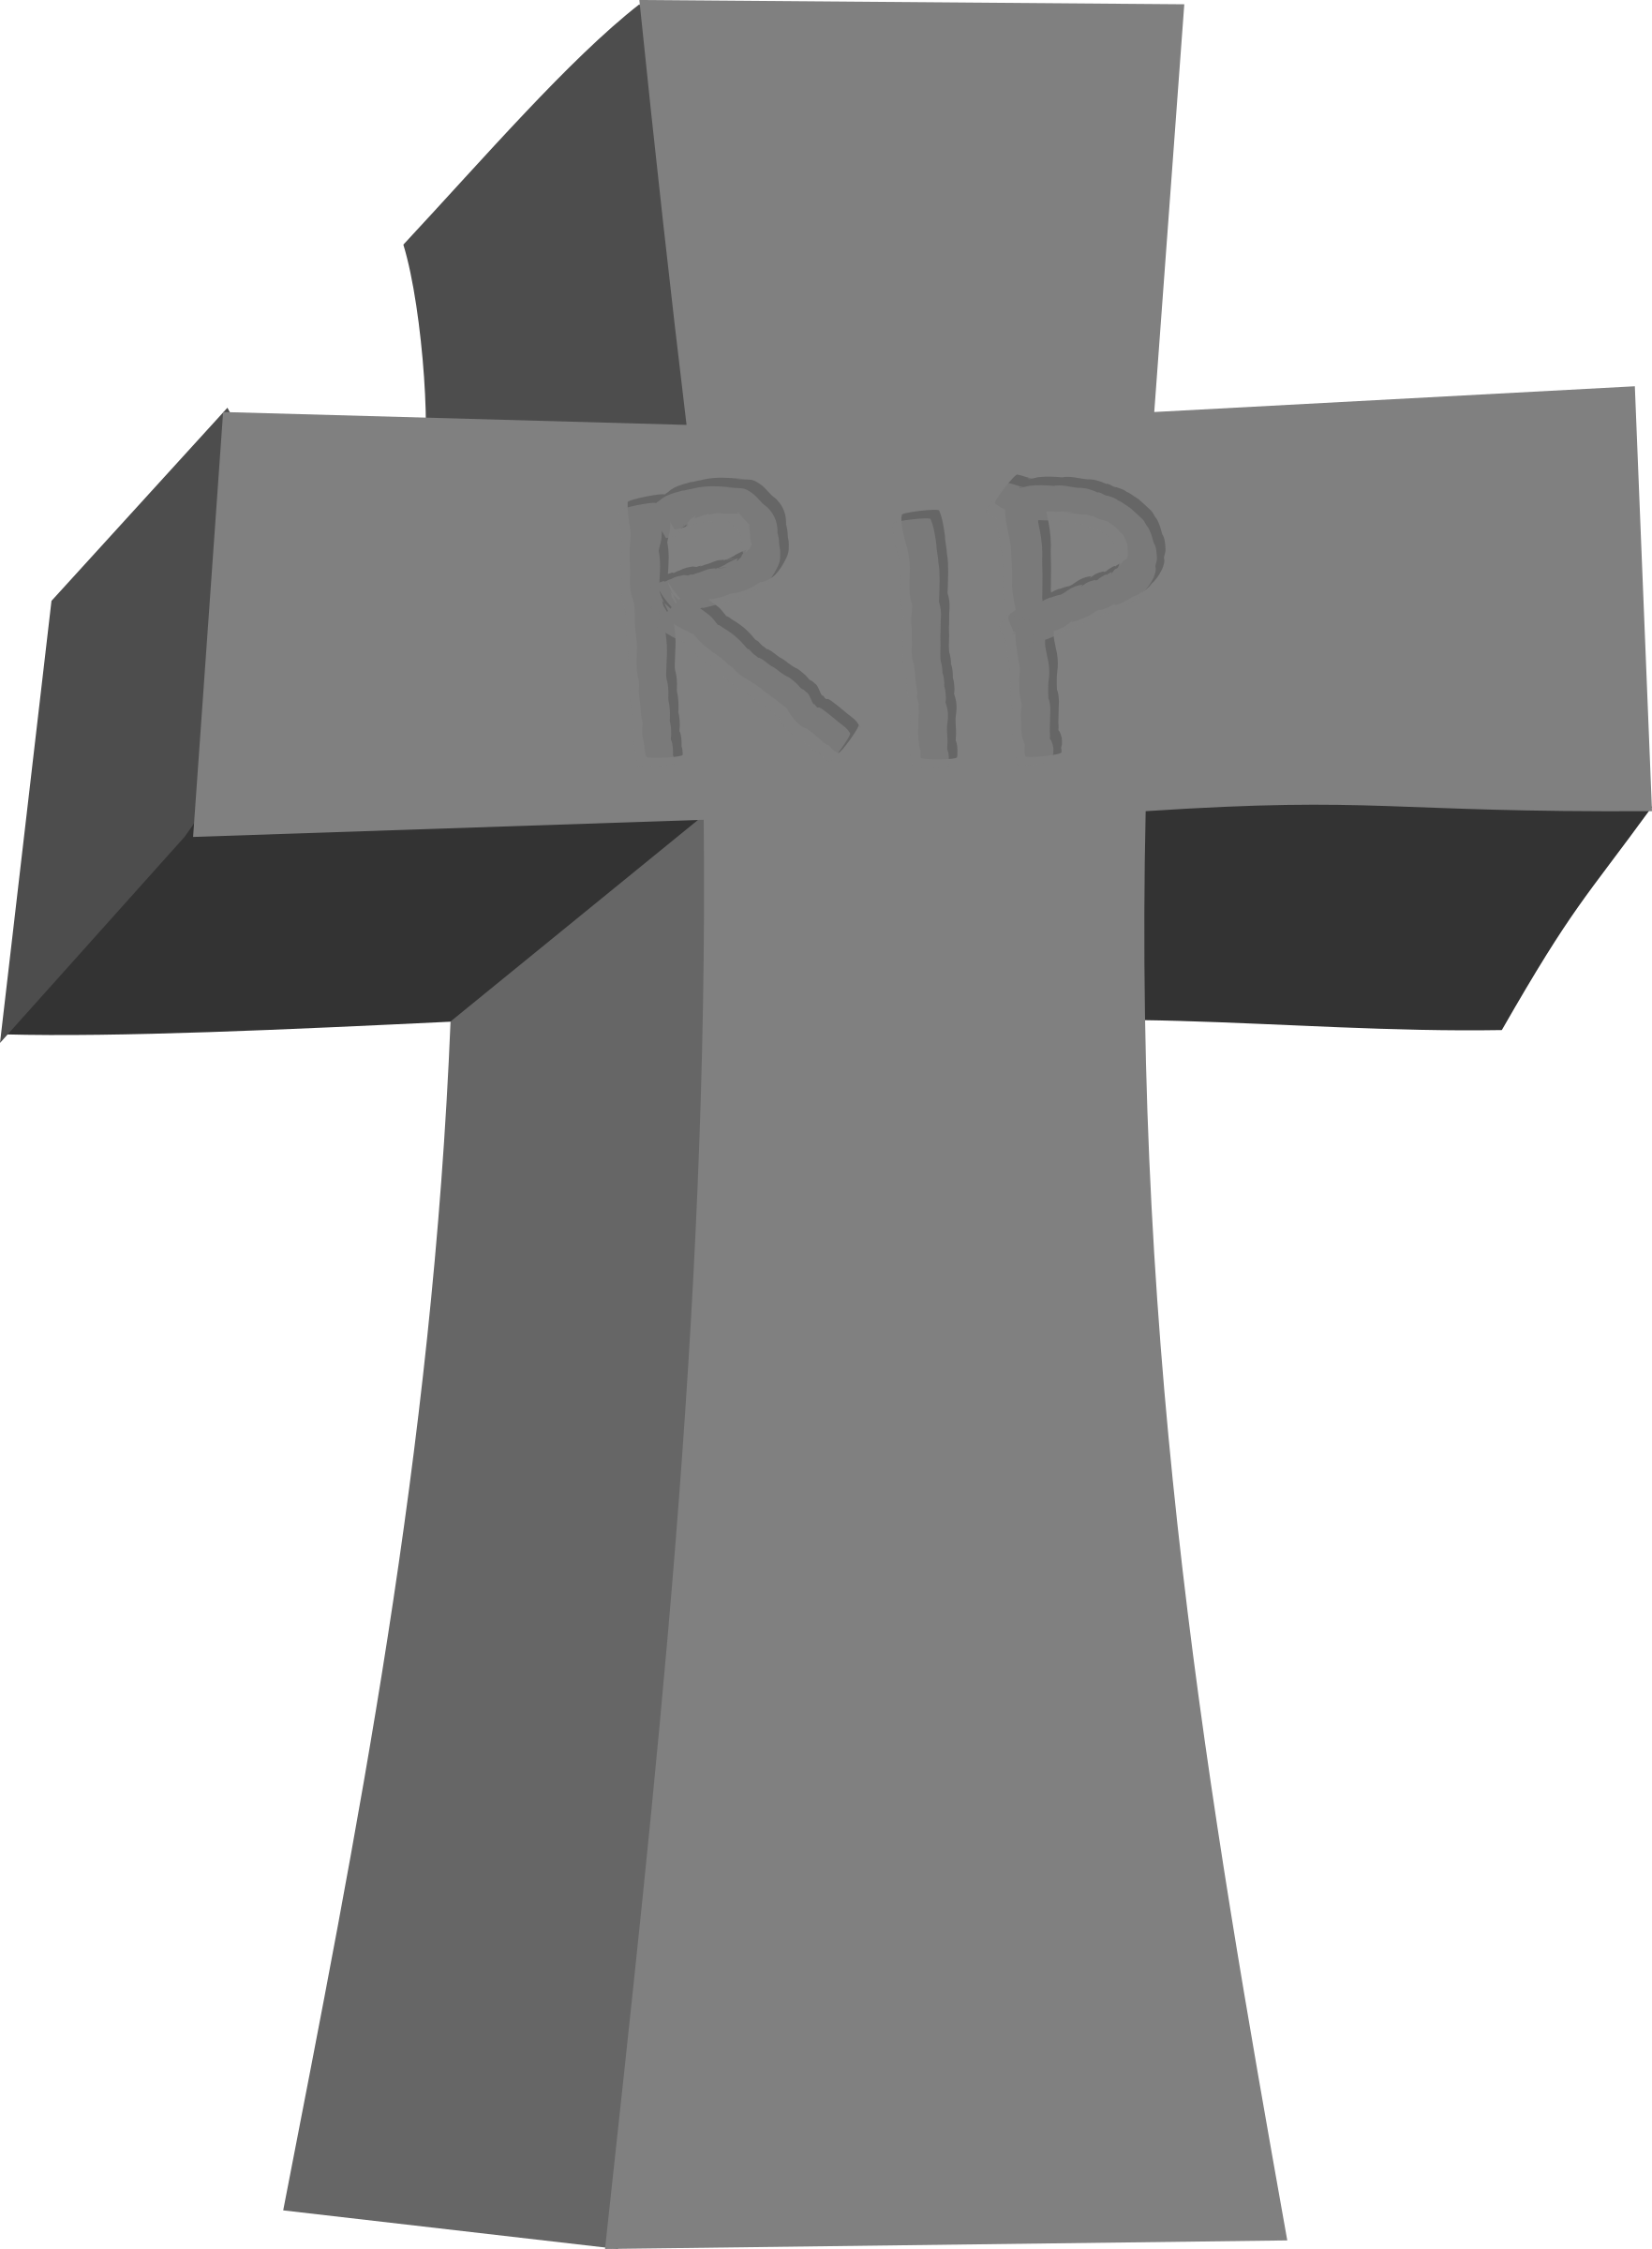 Halloween clipart tombstone banner stock 28+ Collection of Cross Tombstone Clipart | High quality, free ... banner stock